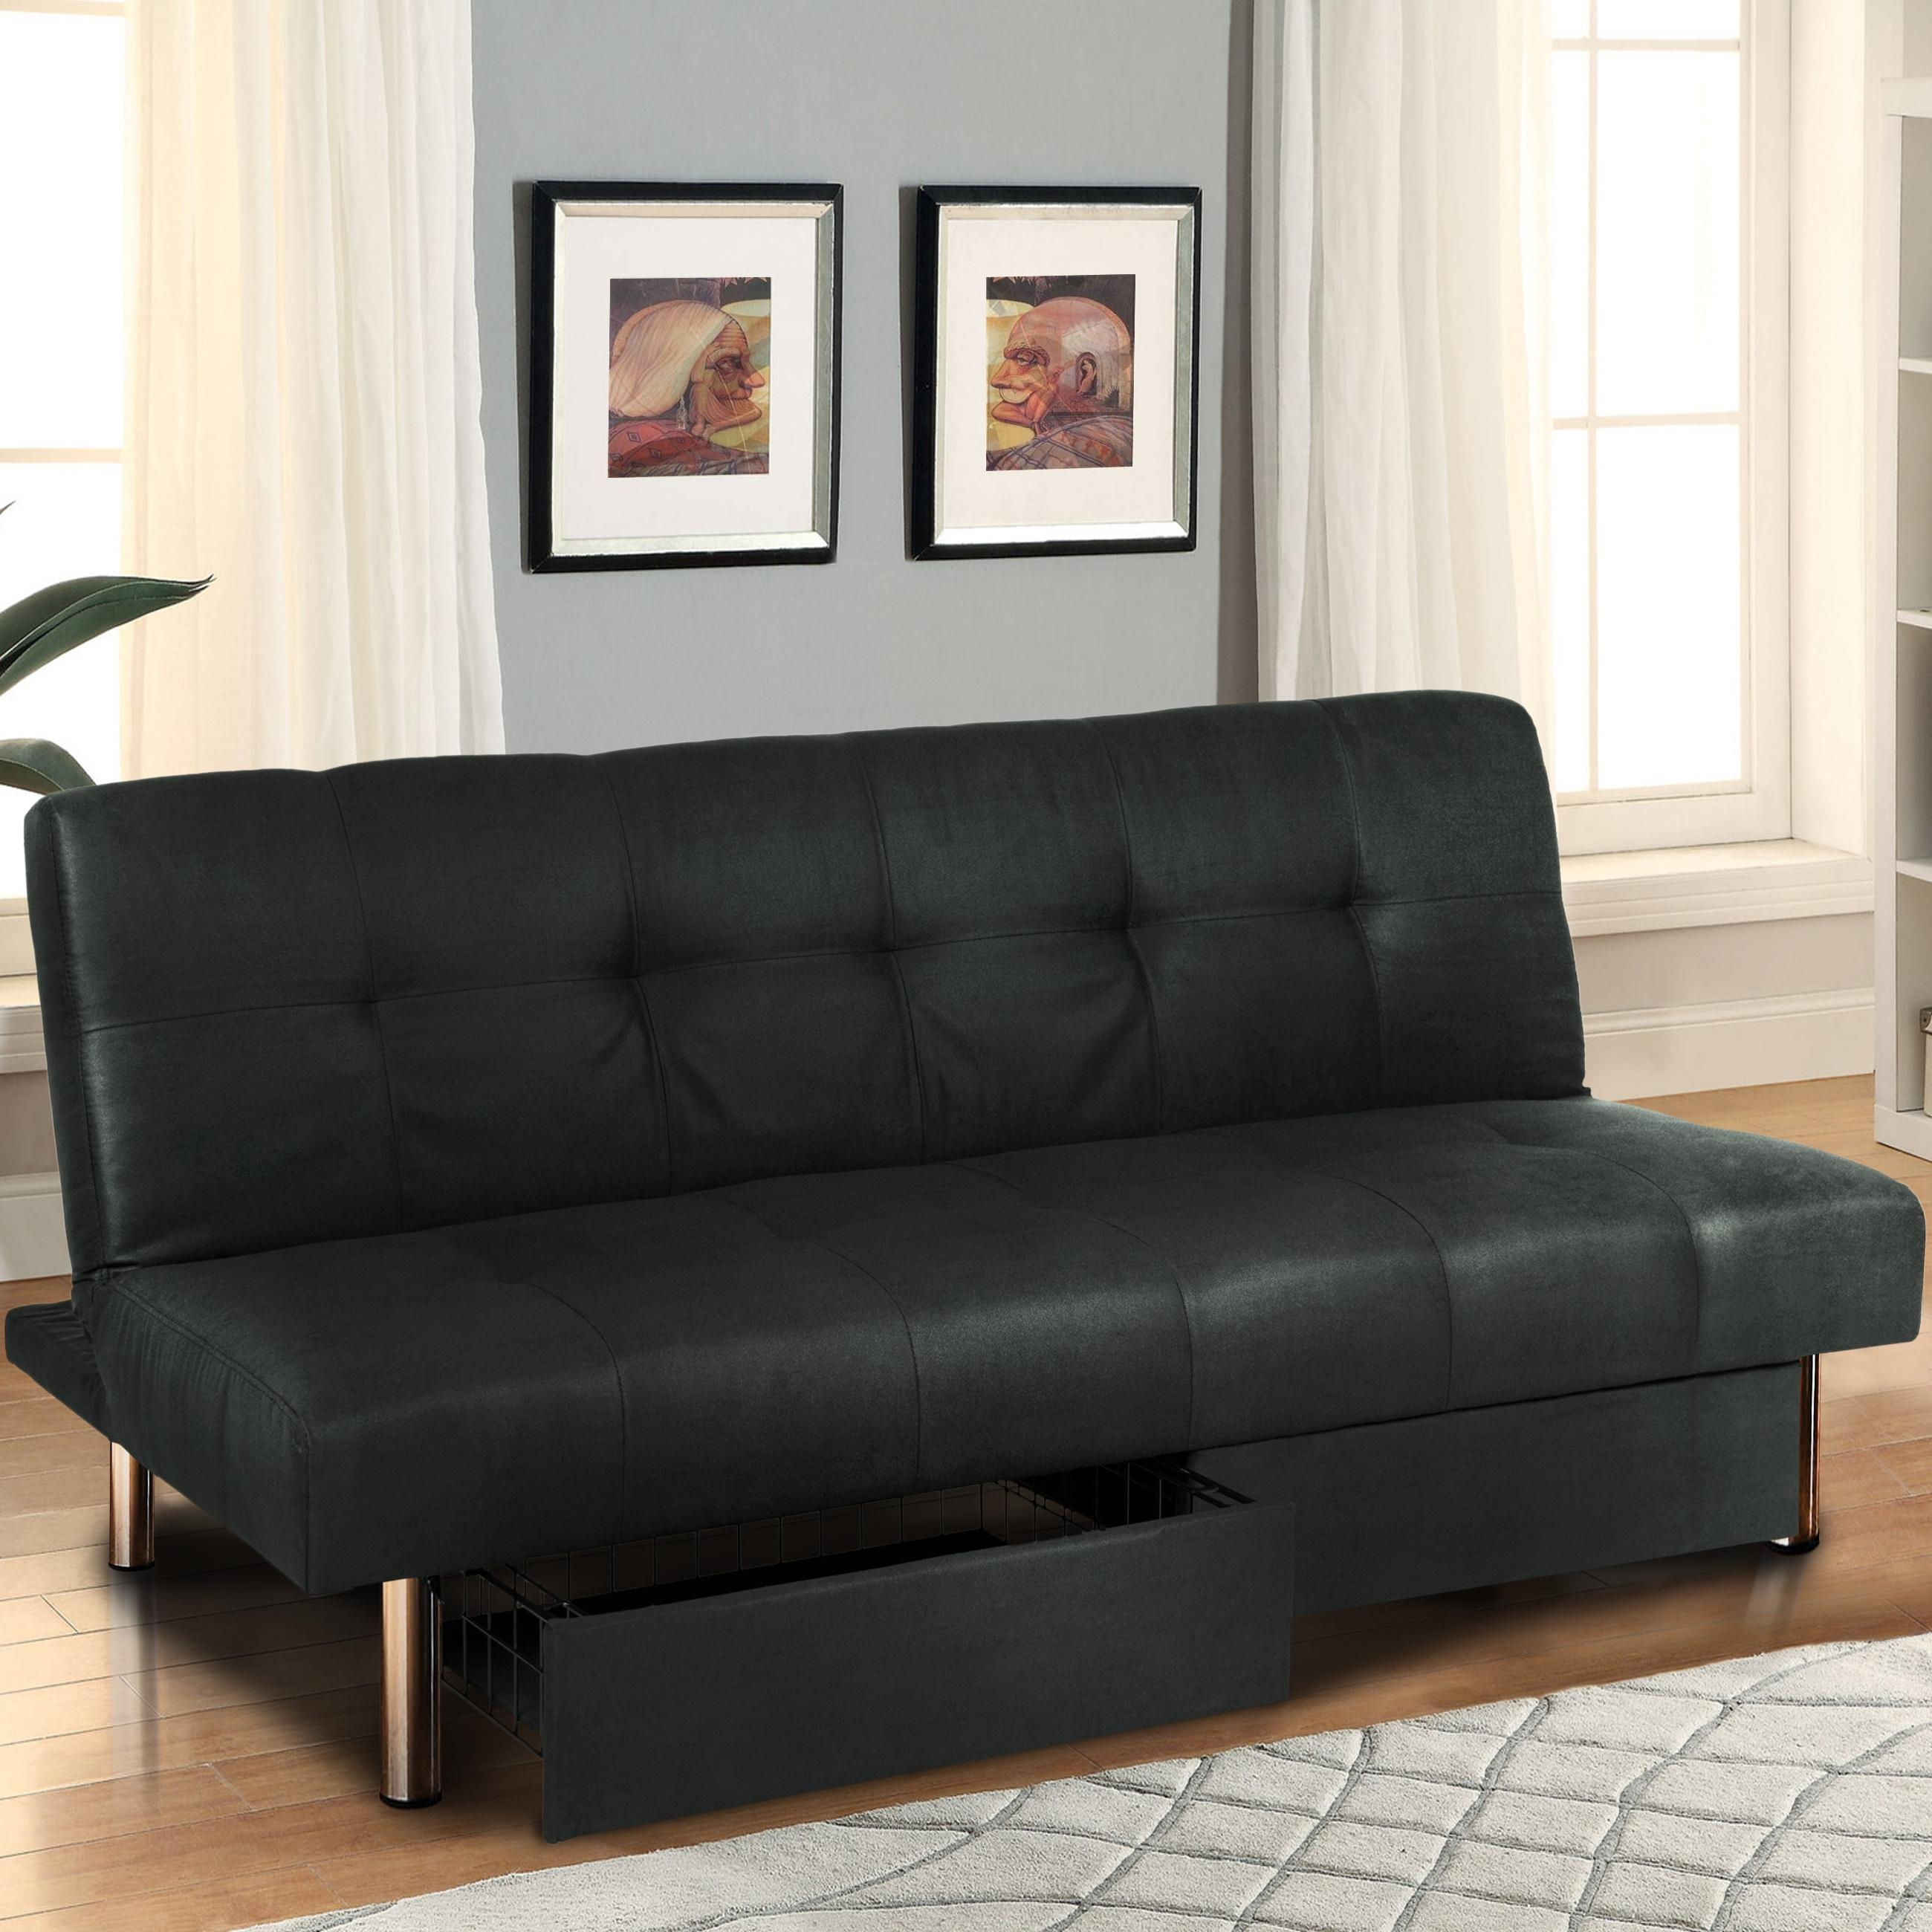 Microfiber Futon Folding Sofa Bed Couch Mattress & Storage Throughout Sofa Lounger Beds (View 4 of 20)